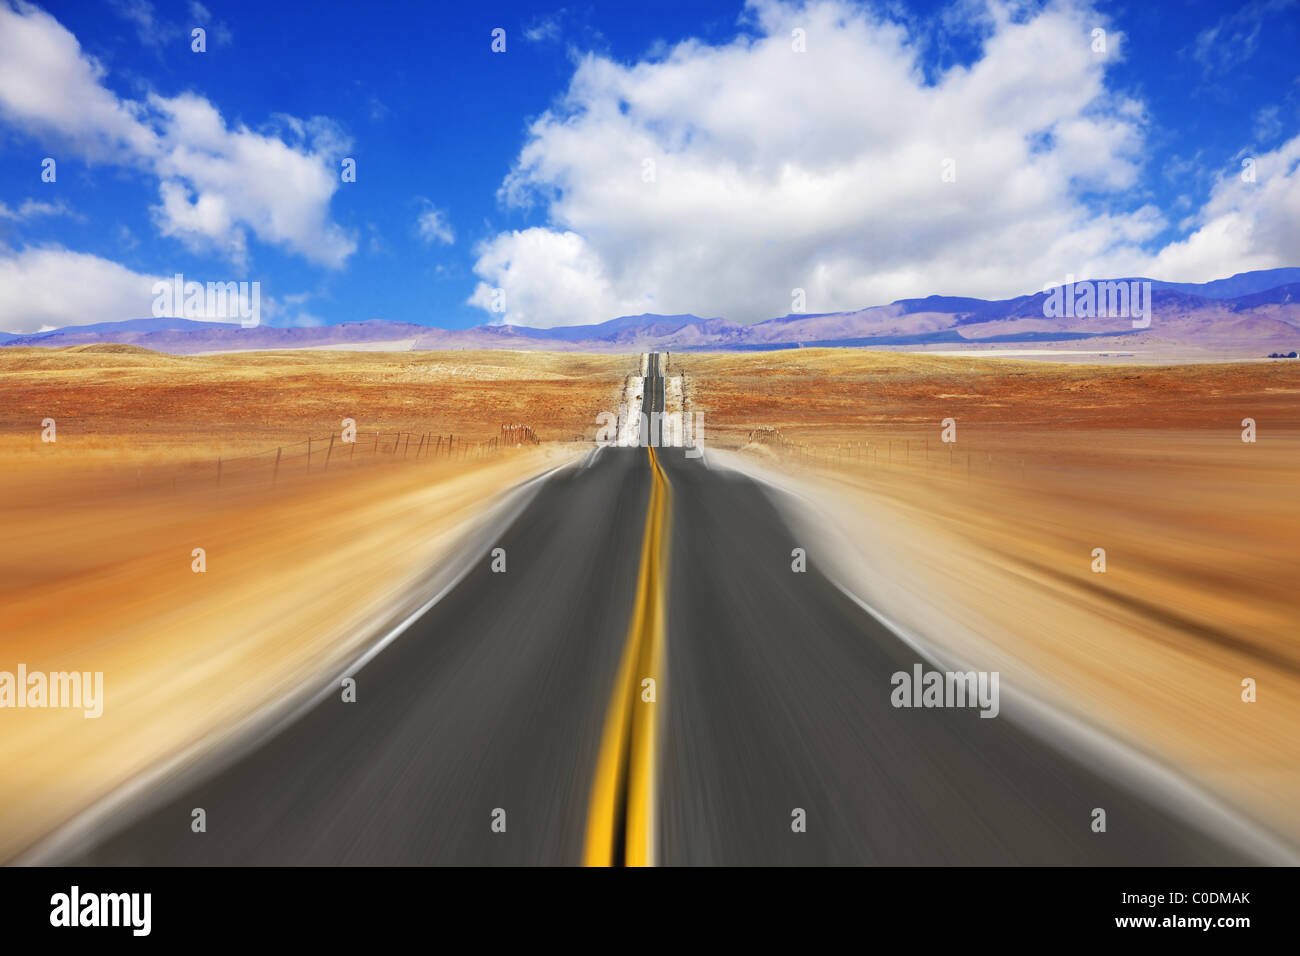 Mirage on high speed in desert - Stock Image